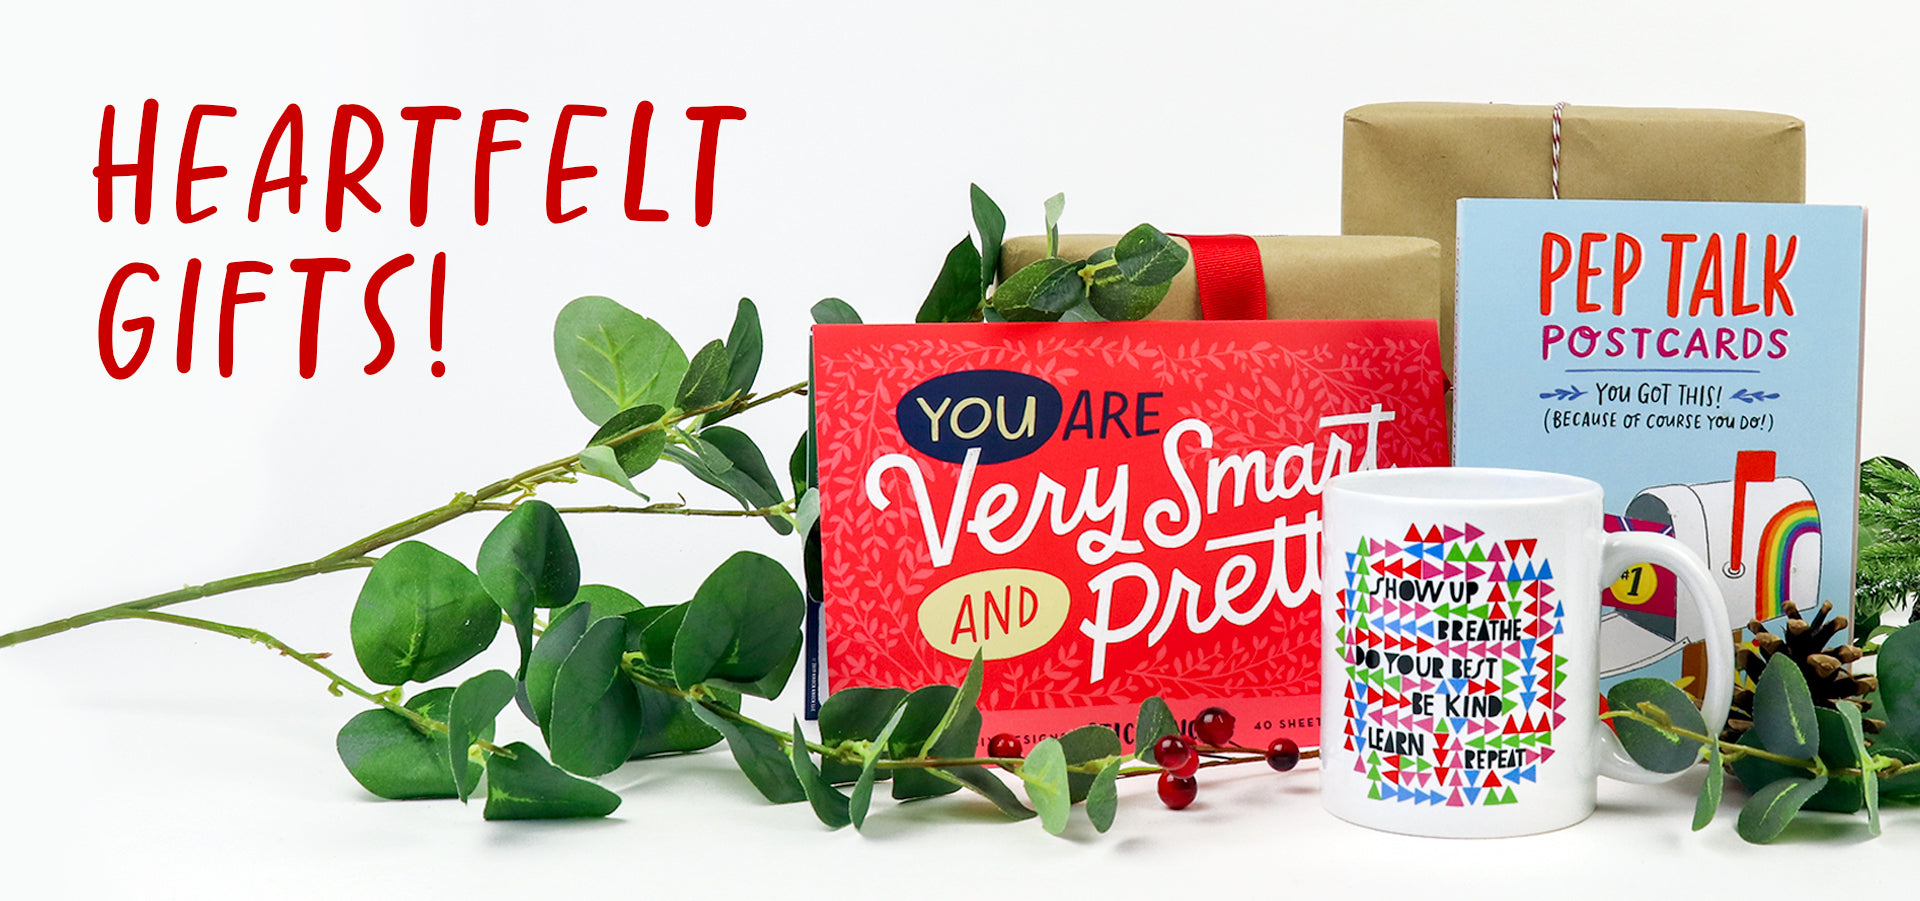 holiday gifts that are solid, supportive and heartwarming